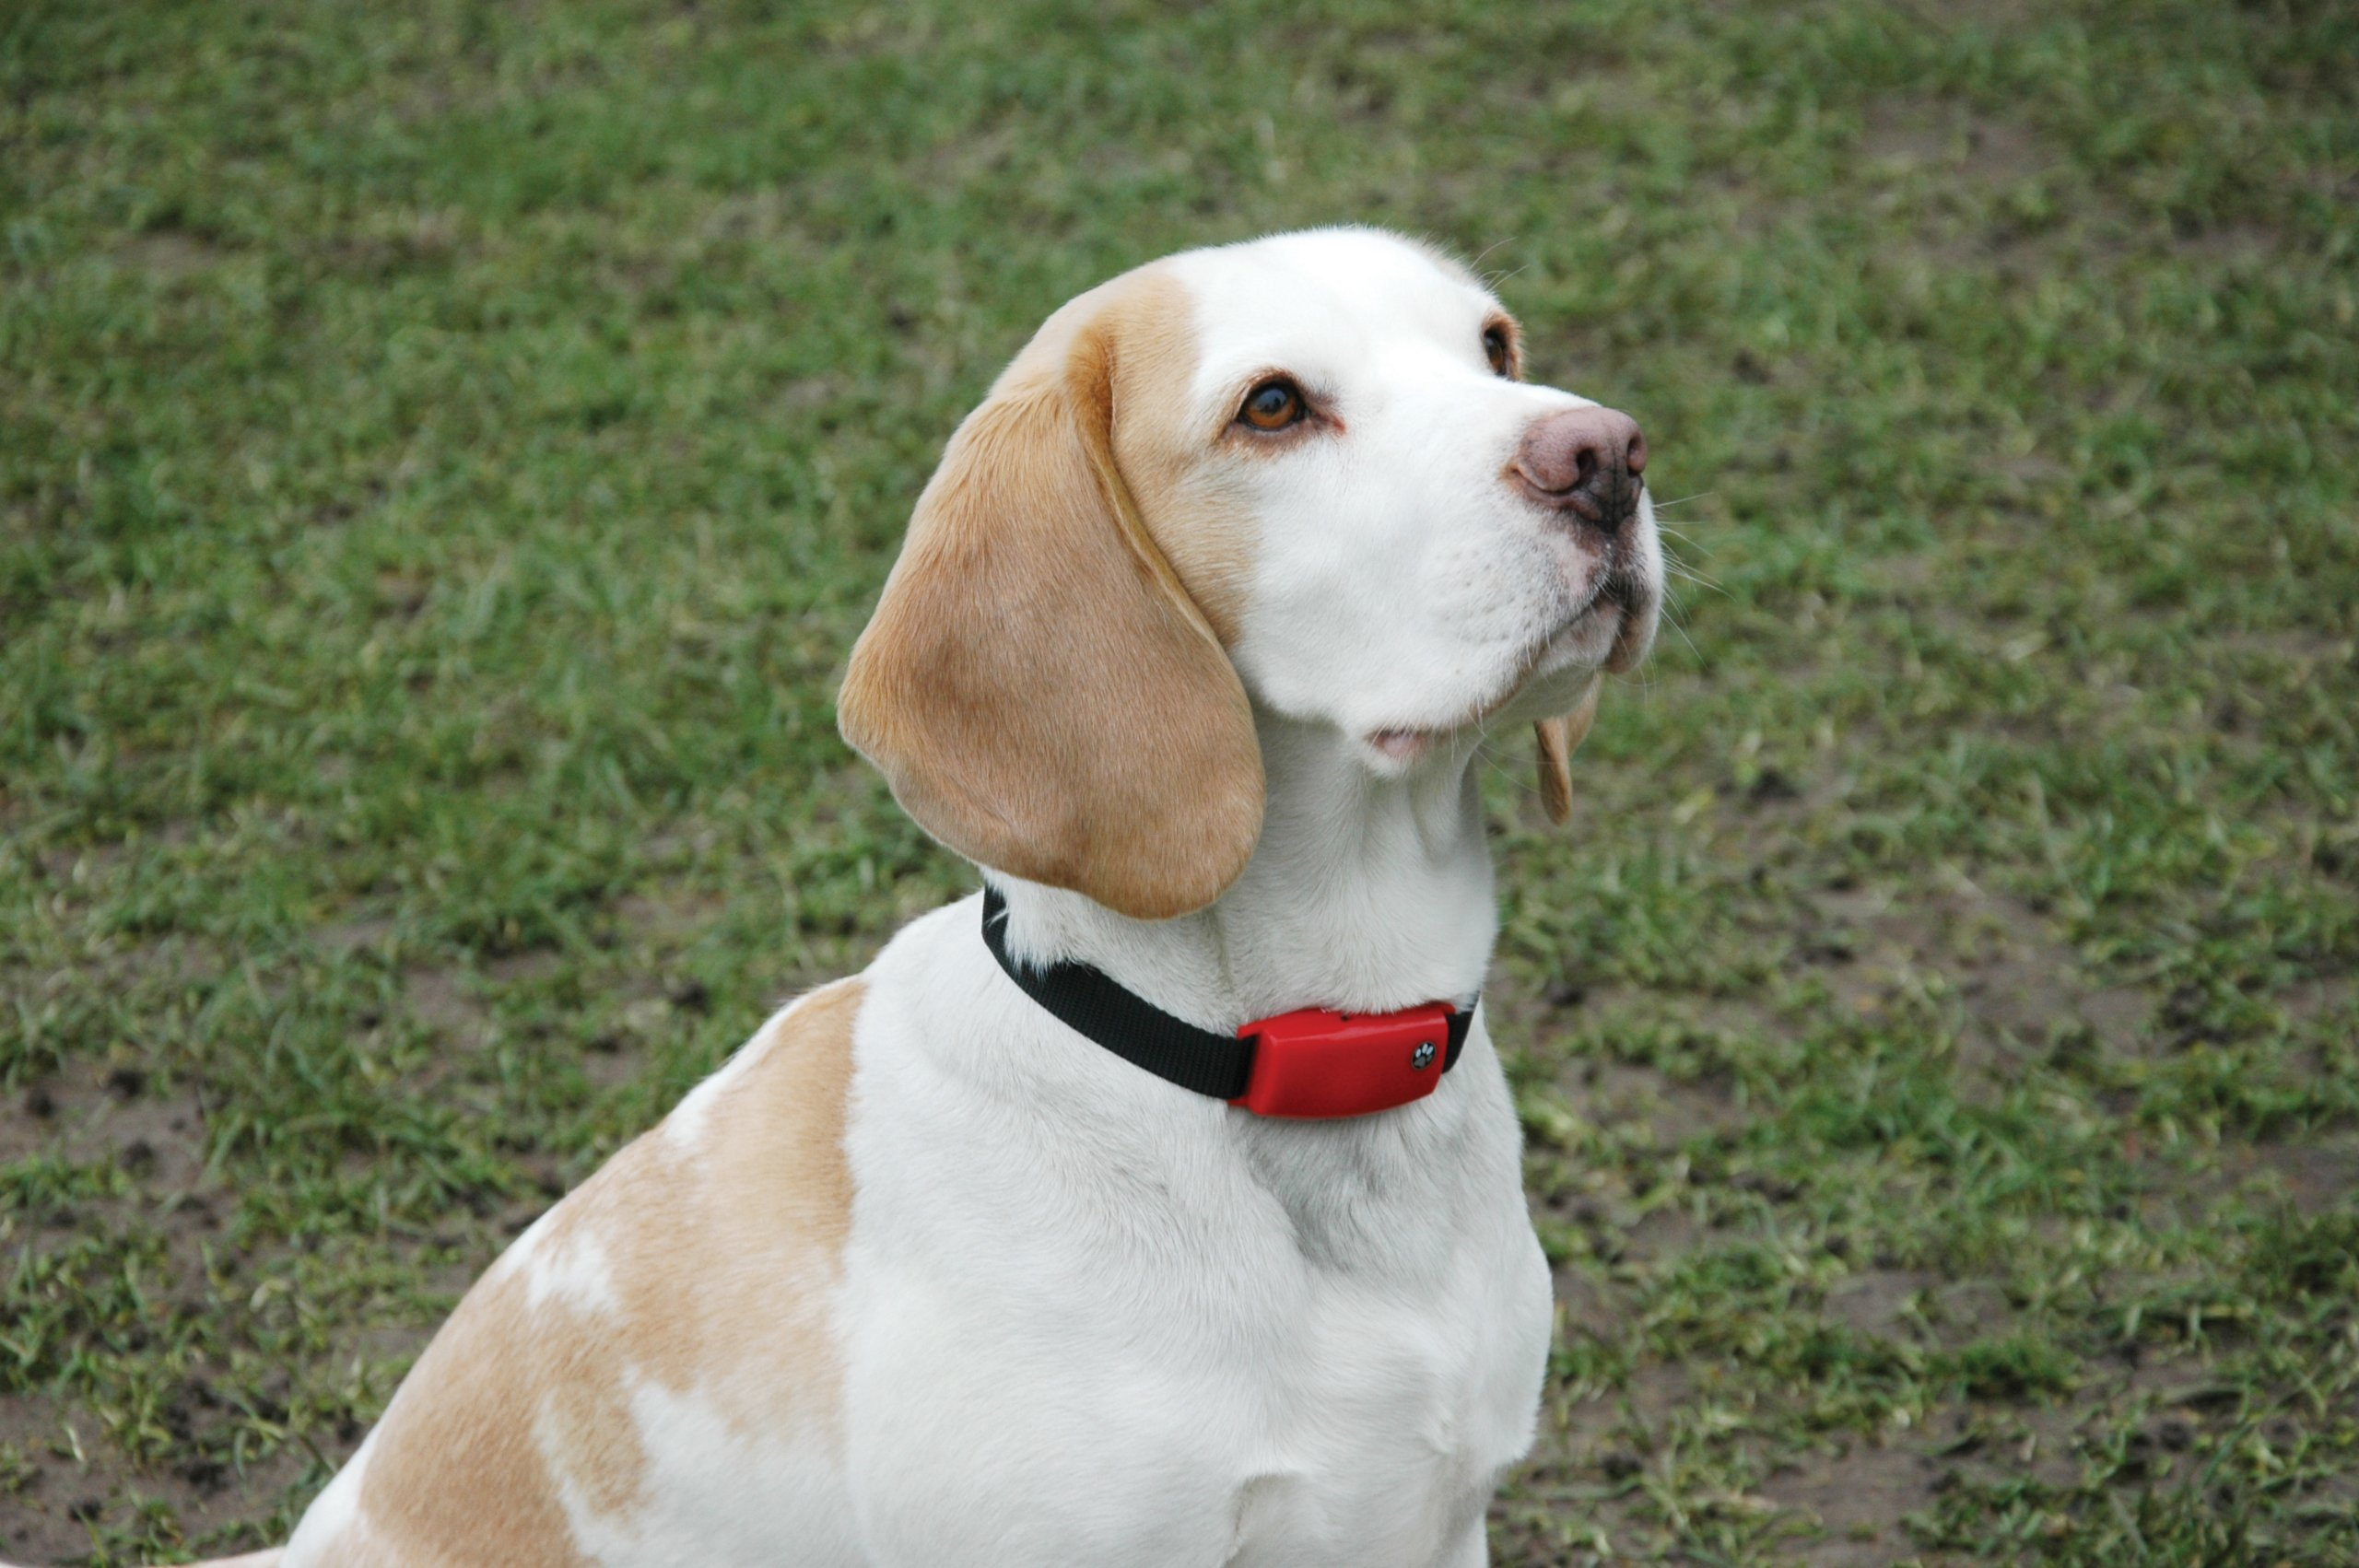 Pet Tag Classic No Bark Collar, Red, Small. by PetTag (Image #3)